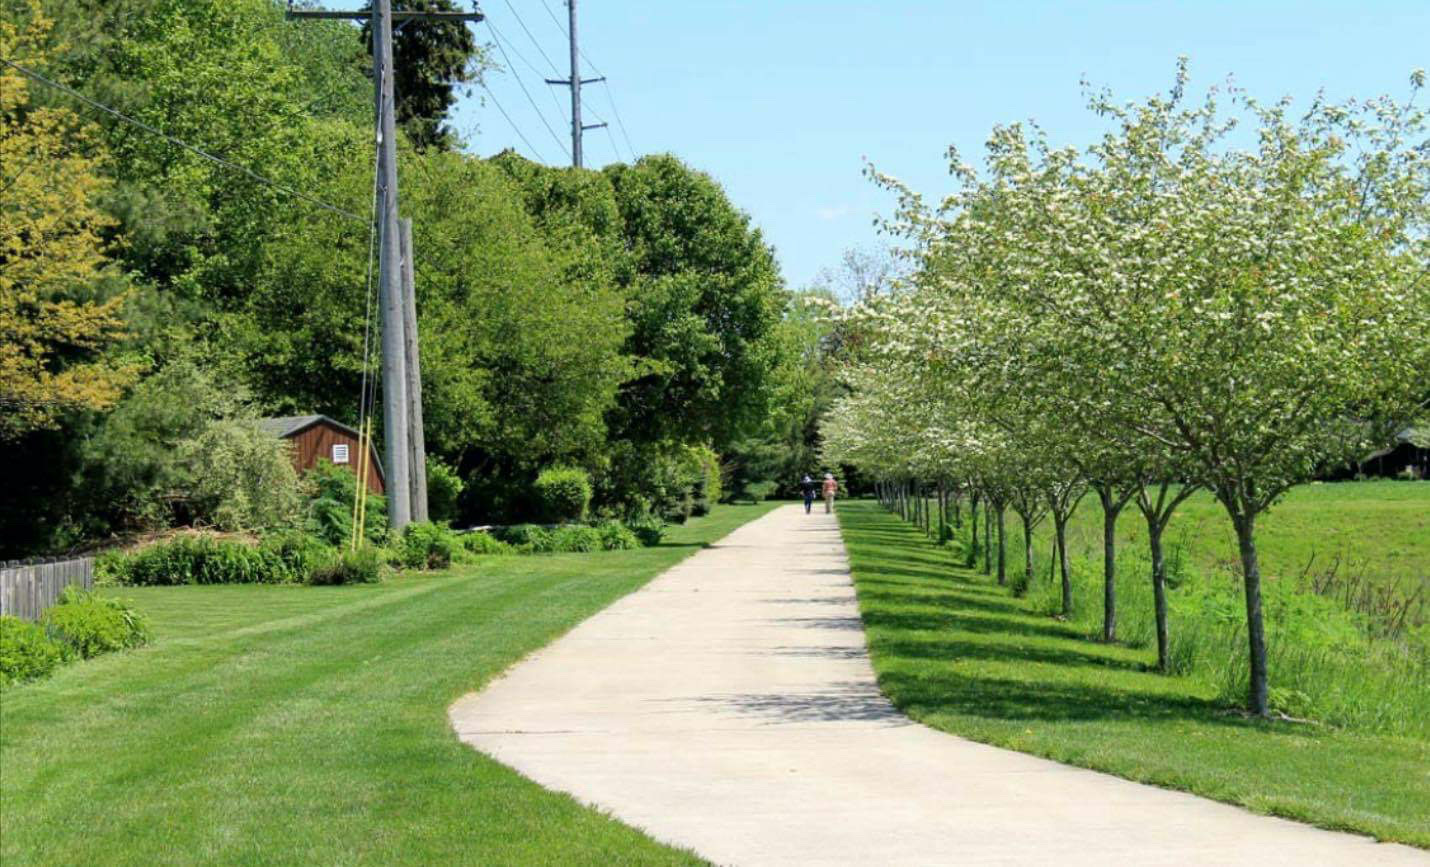 A pathway lined with rows of trees